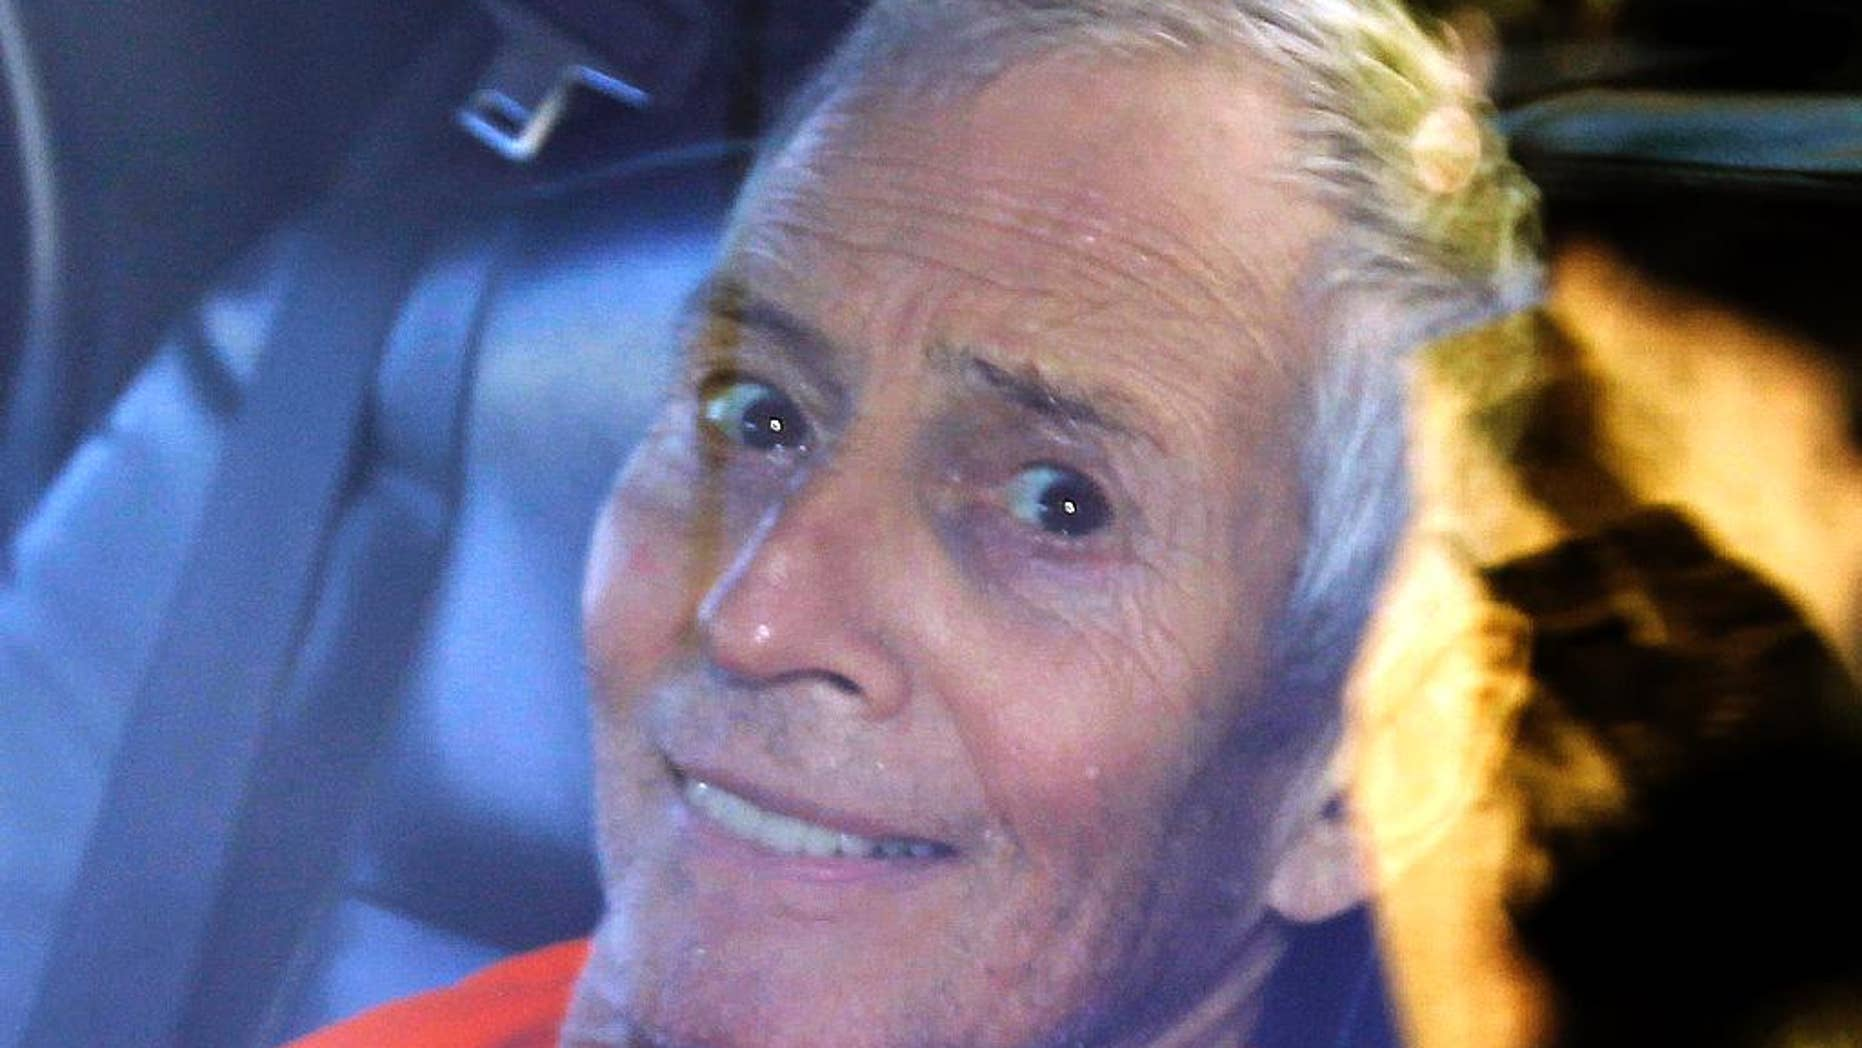 FILE - In this Tuesday, March 17, 2015, file photo, millionaire Robert Durst is escorted from Orleans Parish Criminal District Court to the Orleans Parish Prison after his arraignment in New Orleans. Durst returns to court Thursday, April 2, 2015, where his attorneys plan to argue that the FBI searched his room illegally and police covered this up in statements used to get an arrest warrant on Louisiana weapons charges. (AP Photo/Gerald Herbert, File)